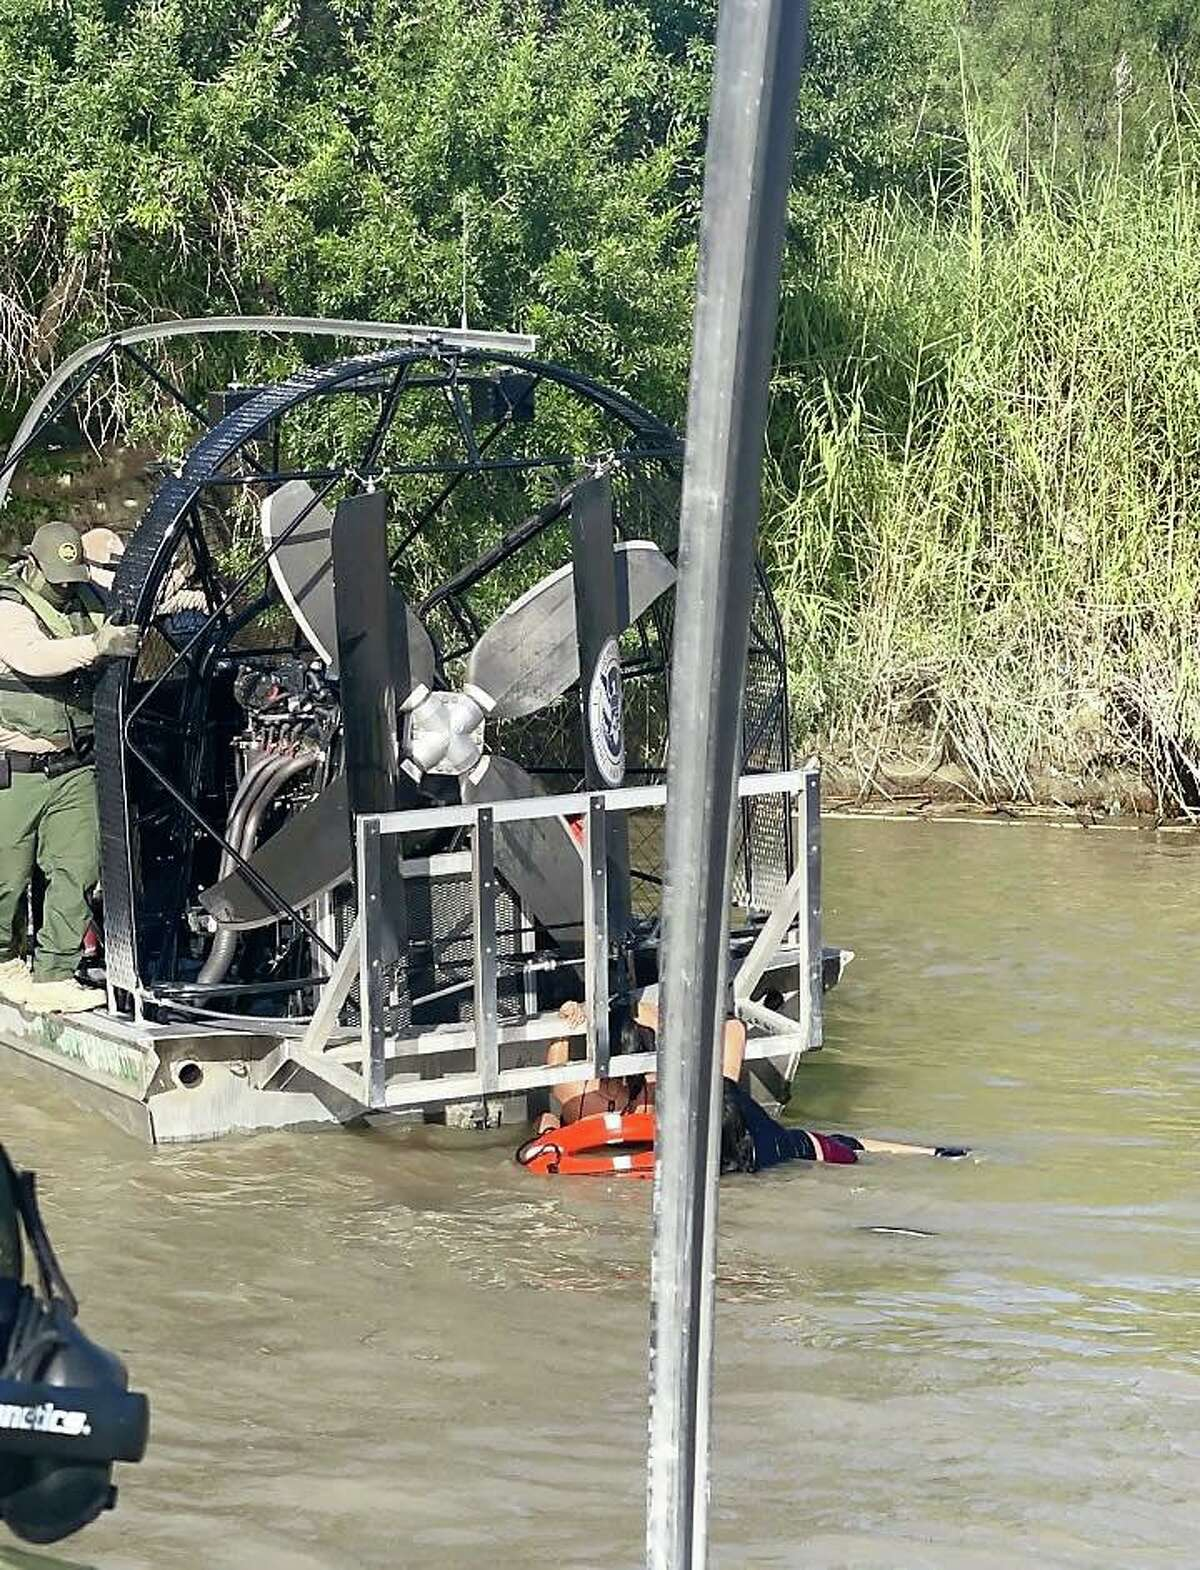 The U.S. Border Patrol's Marine Unit recently stopped a pair of incidents involving migrants attempting to swim across the Rio Grande and enter the country illegally.